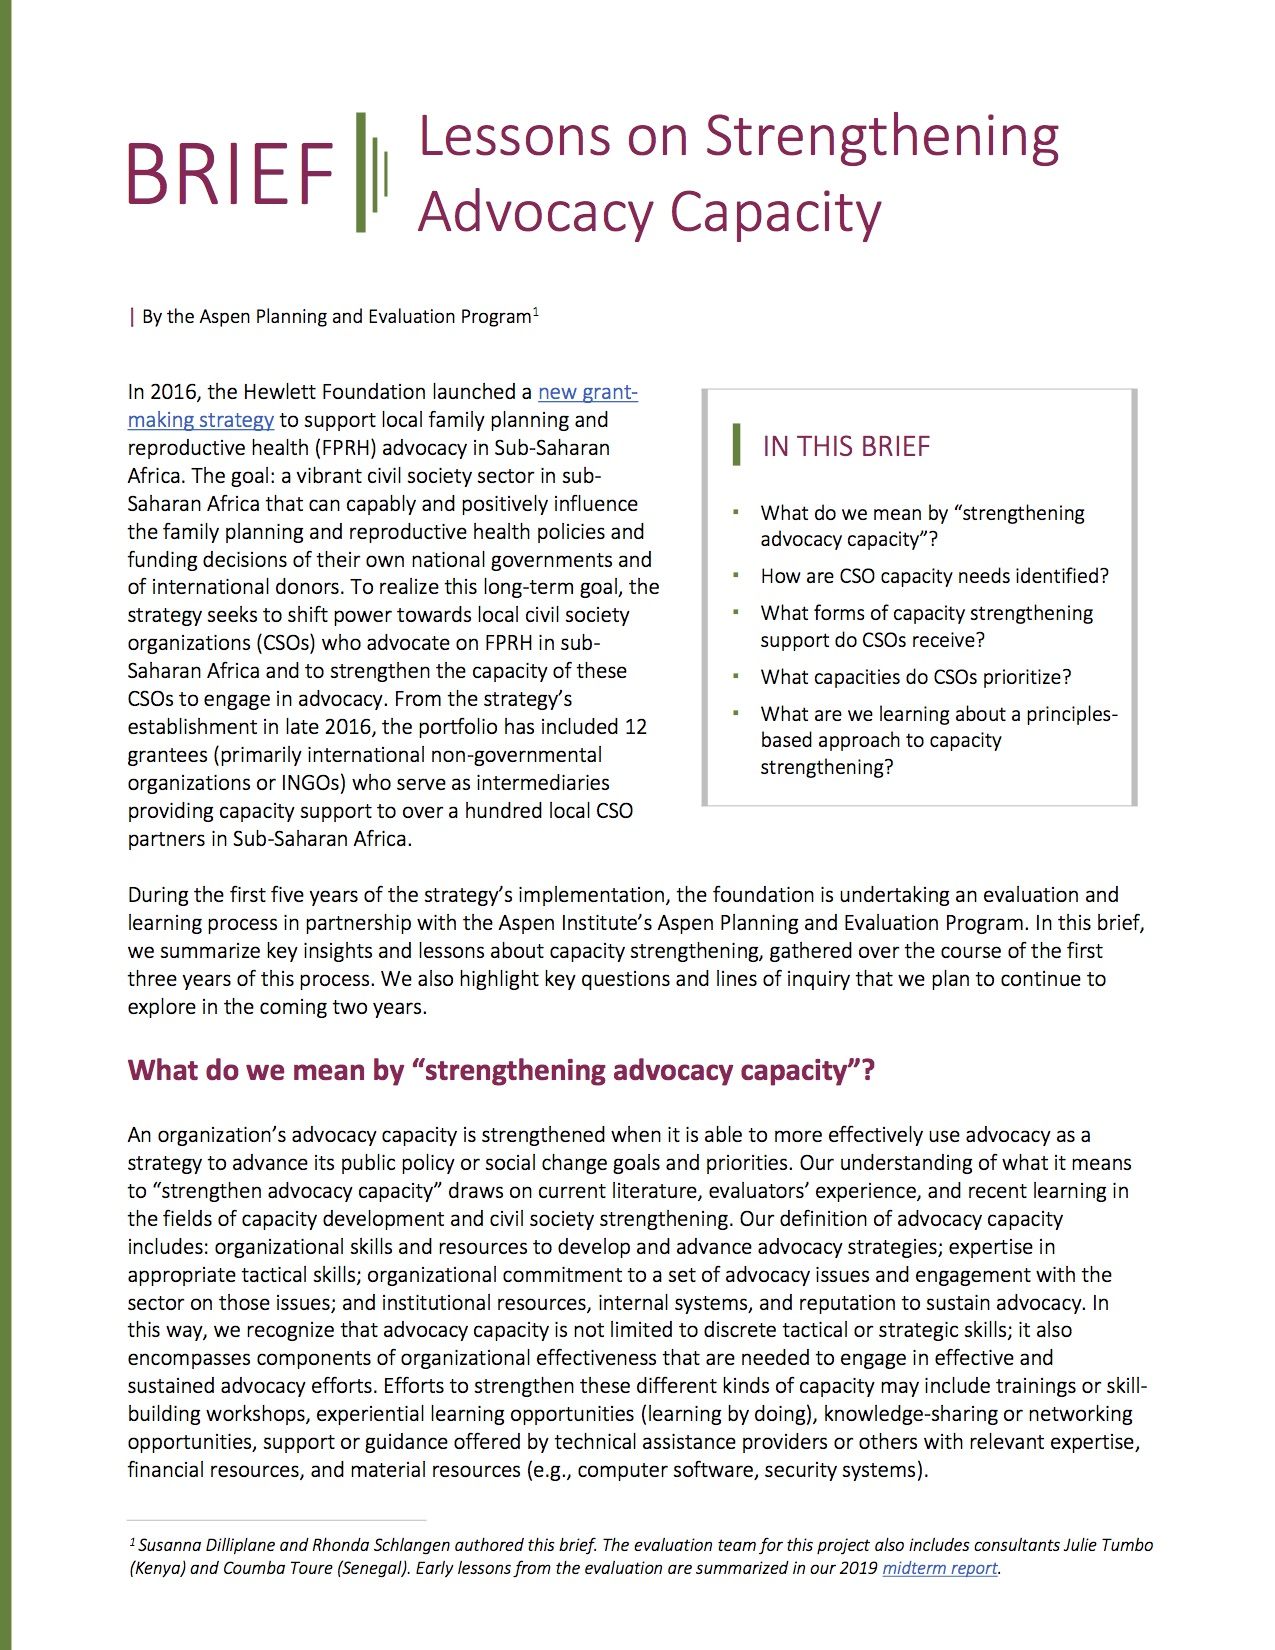 Brief: Strengthening Advocacy Capacity